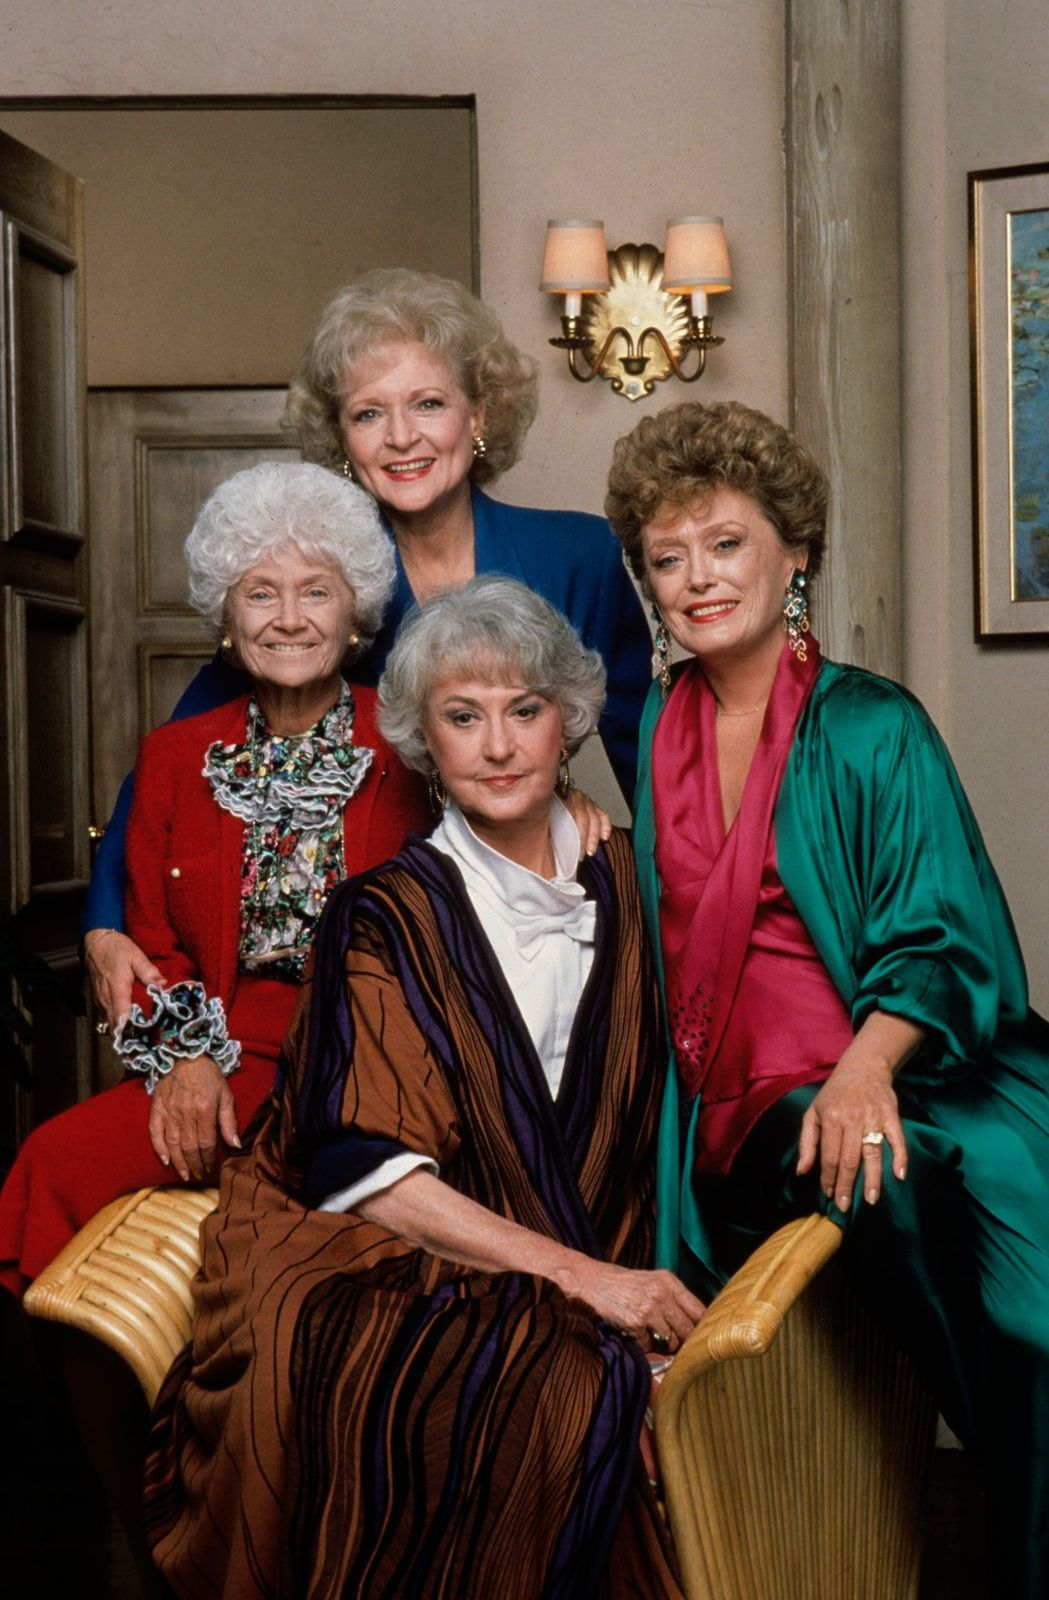 Betty White (Rose); Estelle Getty (Sophia), Rue McClanahan (Blanche); Bea Arthur (Dorothy). Picture uploaded on April 8, 2008 | Photo: Walt Disney Television/Getty Images